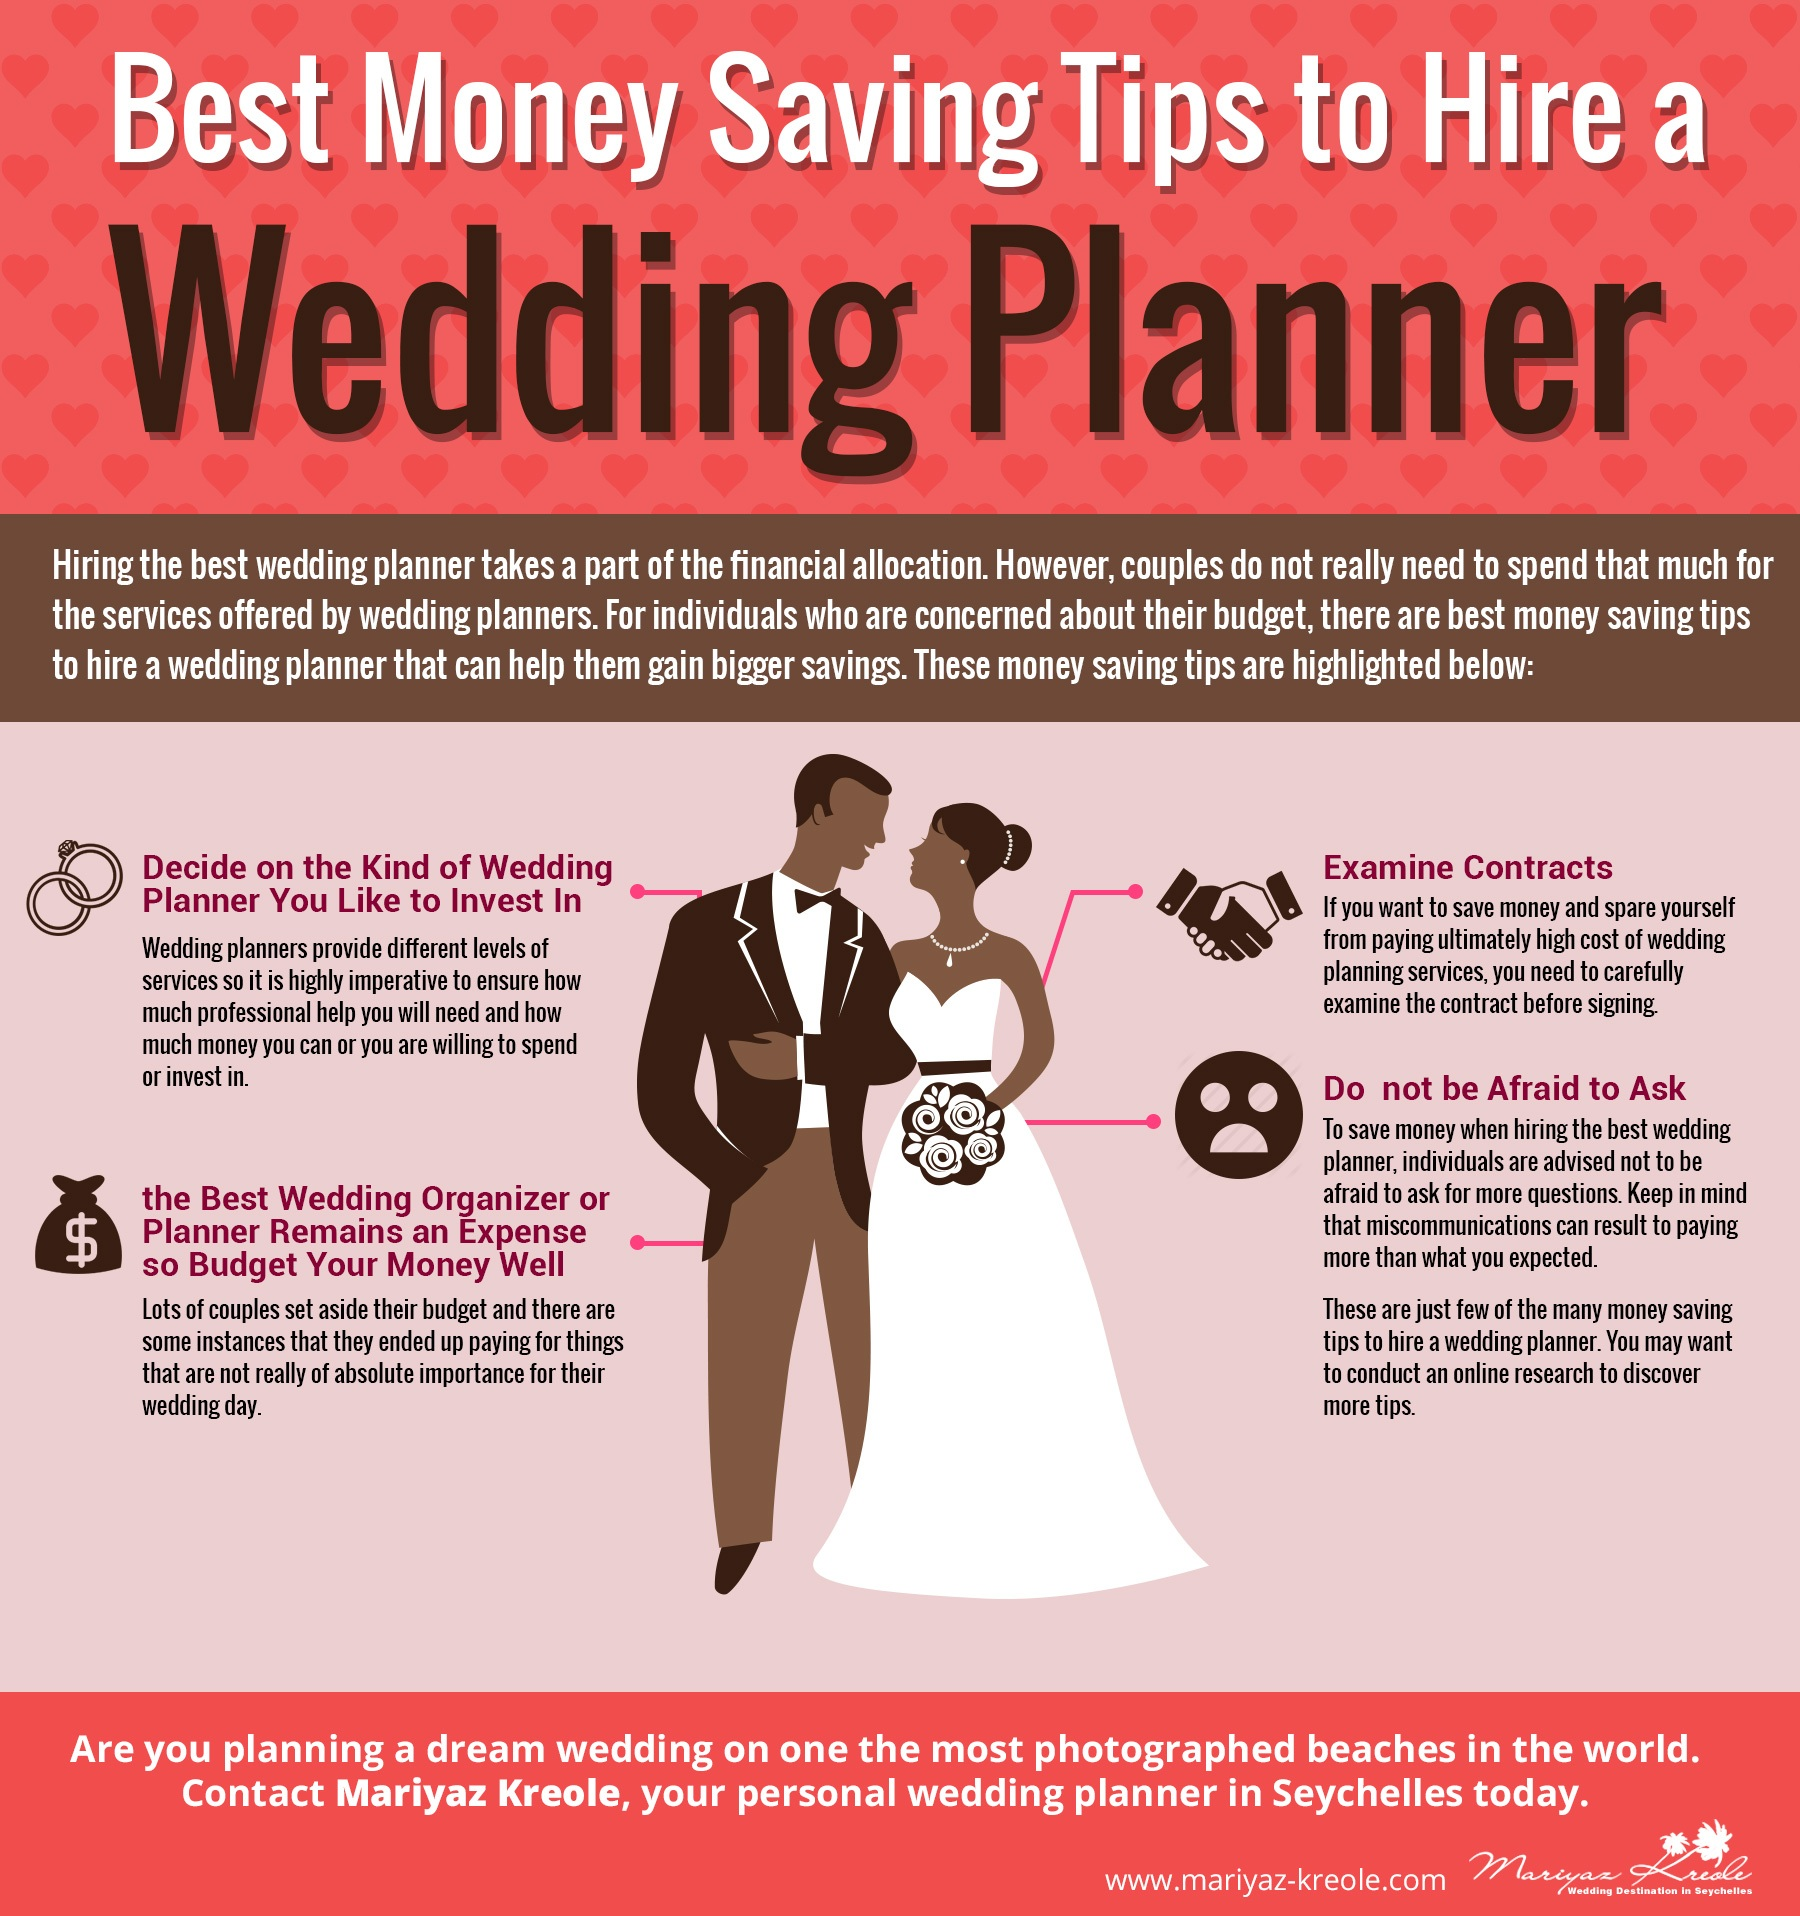 Best Money Saving Tips To Hire A Wedding Planner In Seychelles Visual Ly